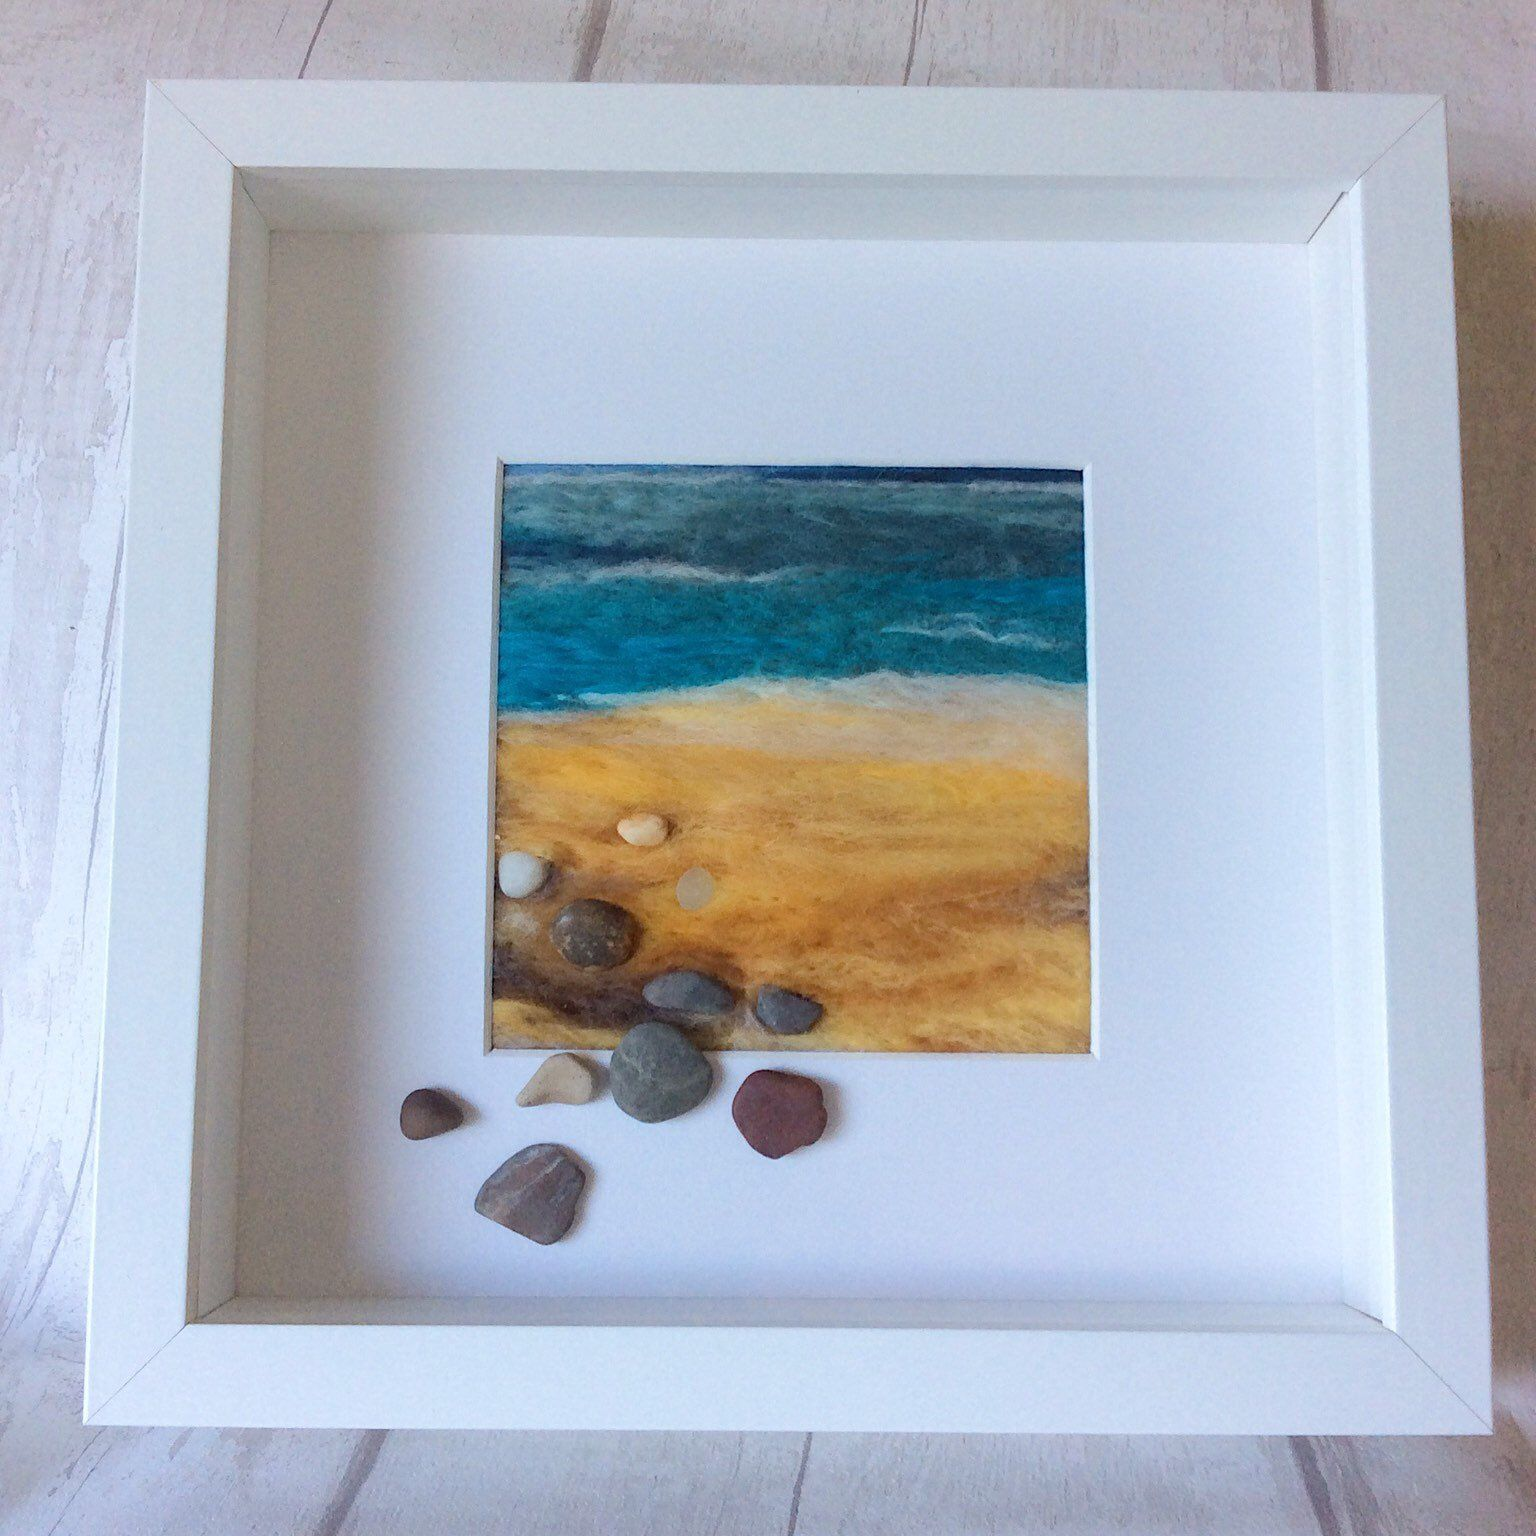 Excited to share this item from my #etsy shop: #Smallneedlefeltedbeachpicture, #feltedwoolpainting, #seasidedecor, #beachscapeartwork #housewarming #relaxingartwork #beachscapepicture #feltedlandscape #beachart #beachlife #feltedbeach #needlefeltedbeach #smallartwork #beachhome #beachdecor #bluedecor #yellowdecor #abstractart #abstractbeachart #abstractbeach